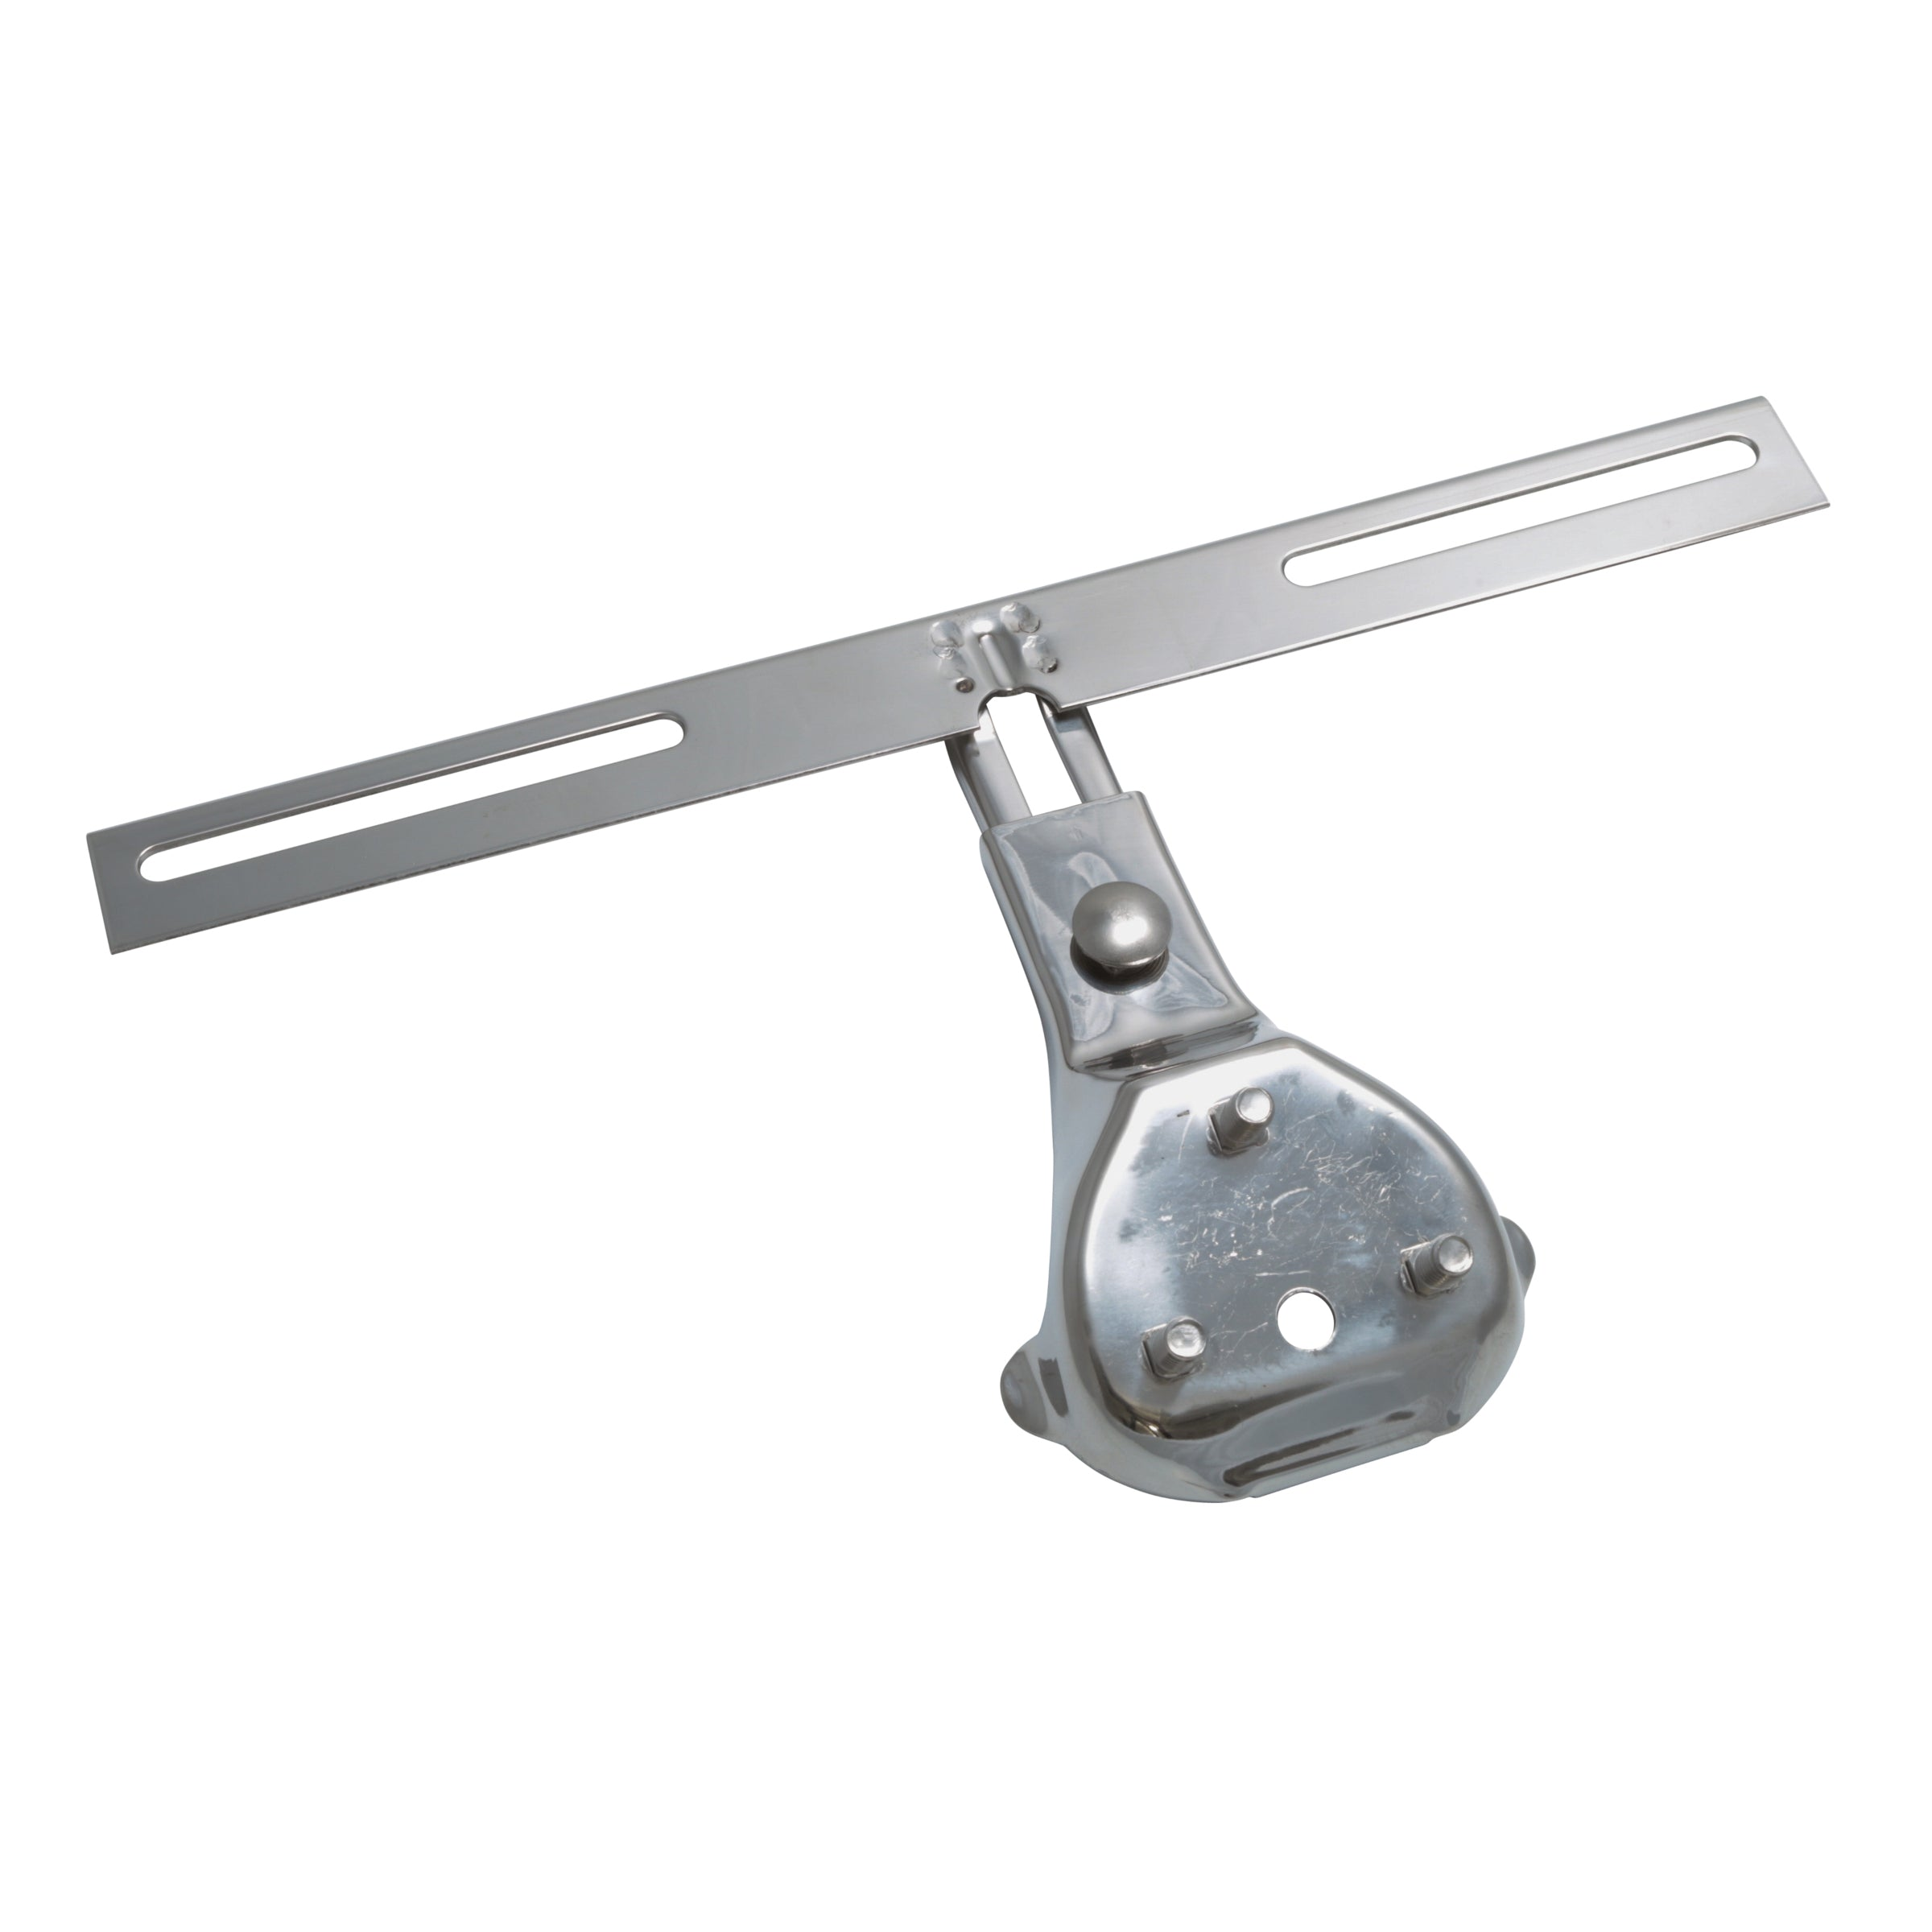 License Plate Bracket (Stainless Steel, Rear) • 1938-48 Ford Passenger